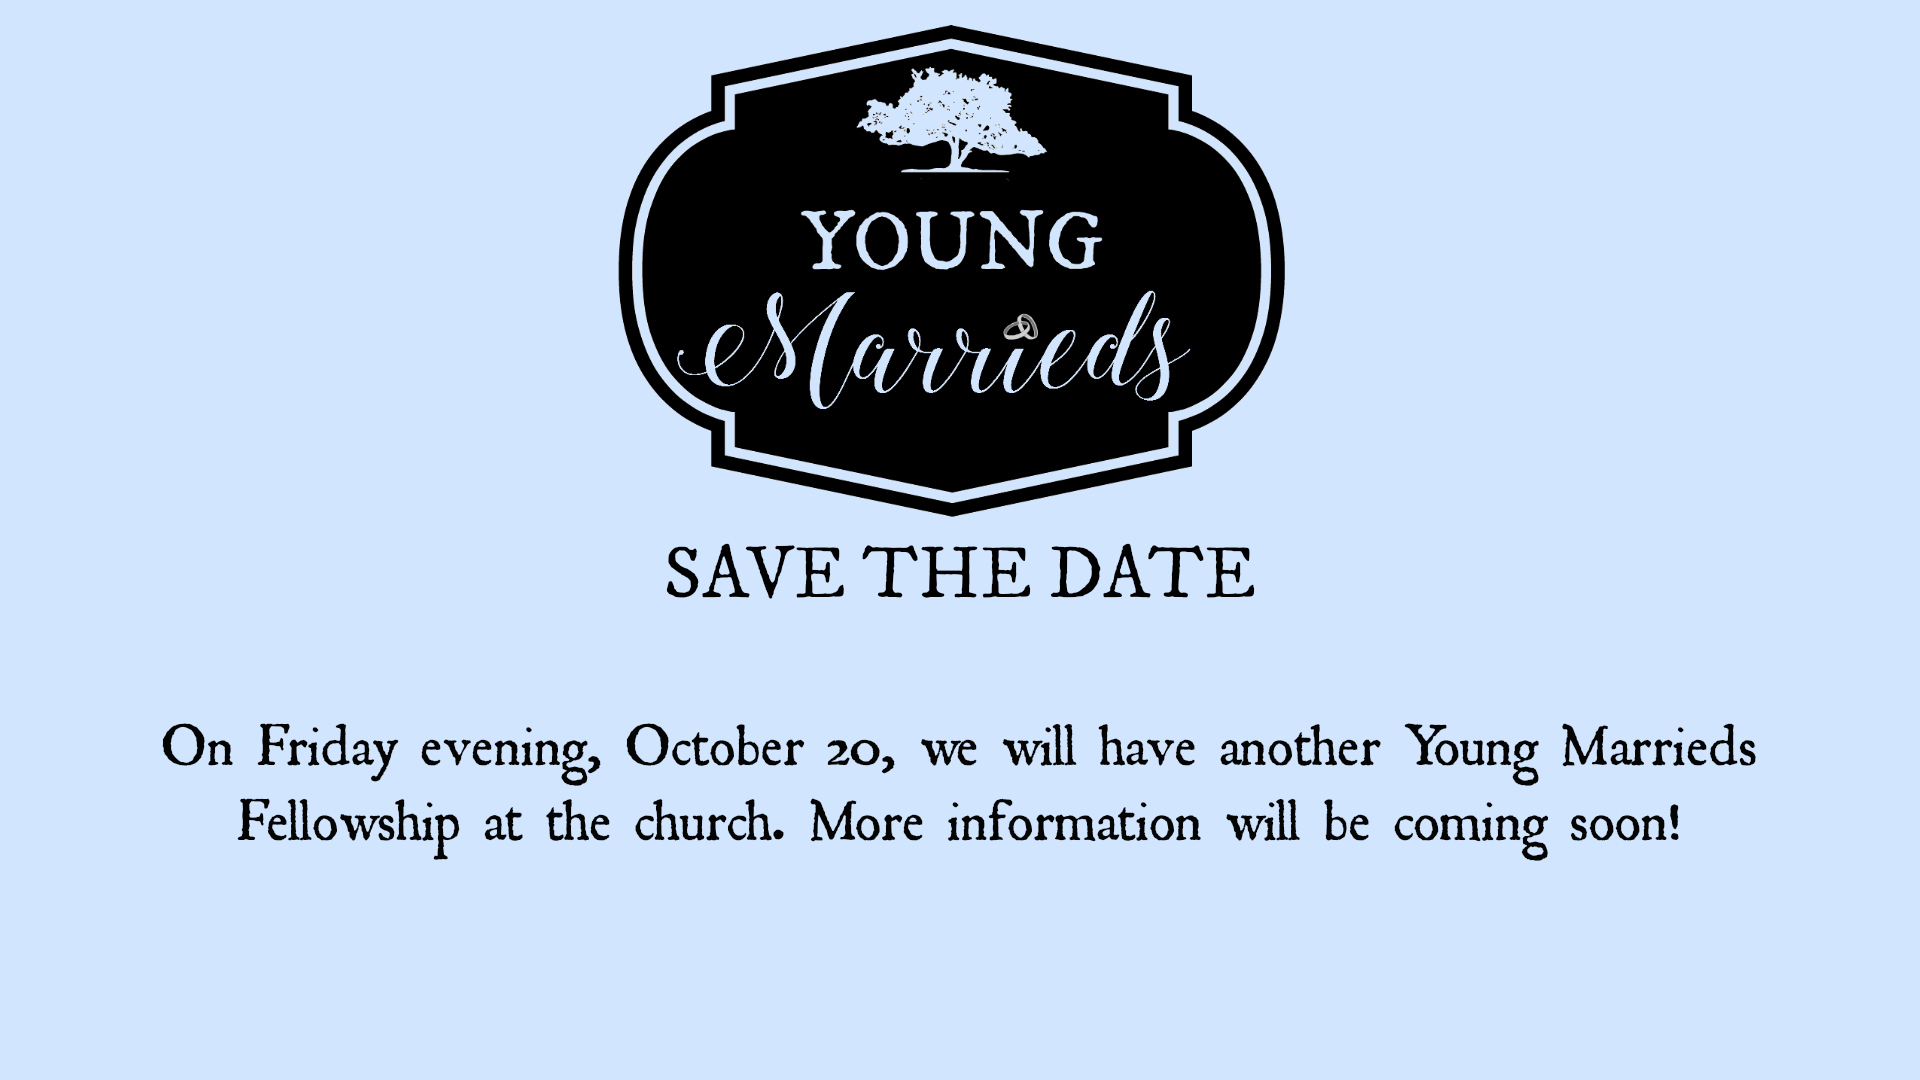 YOUNG MARRIEDS OCT 20.jpg